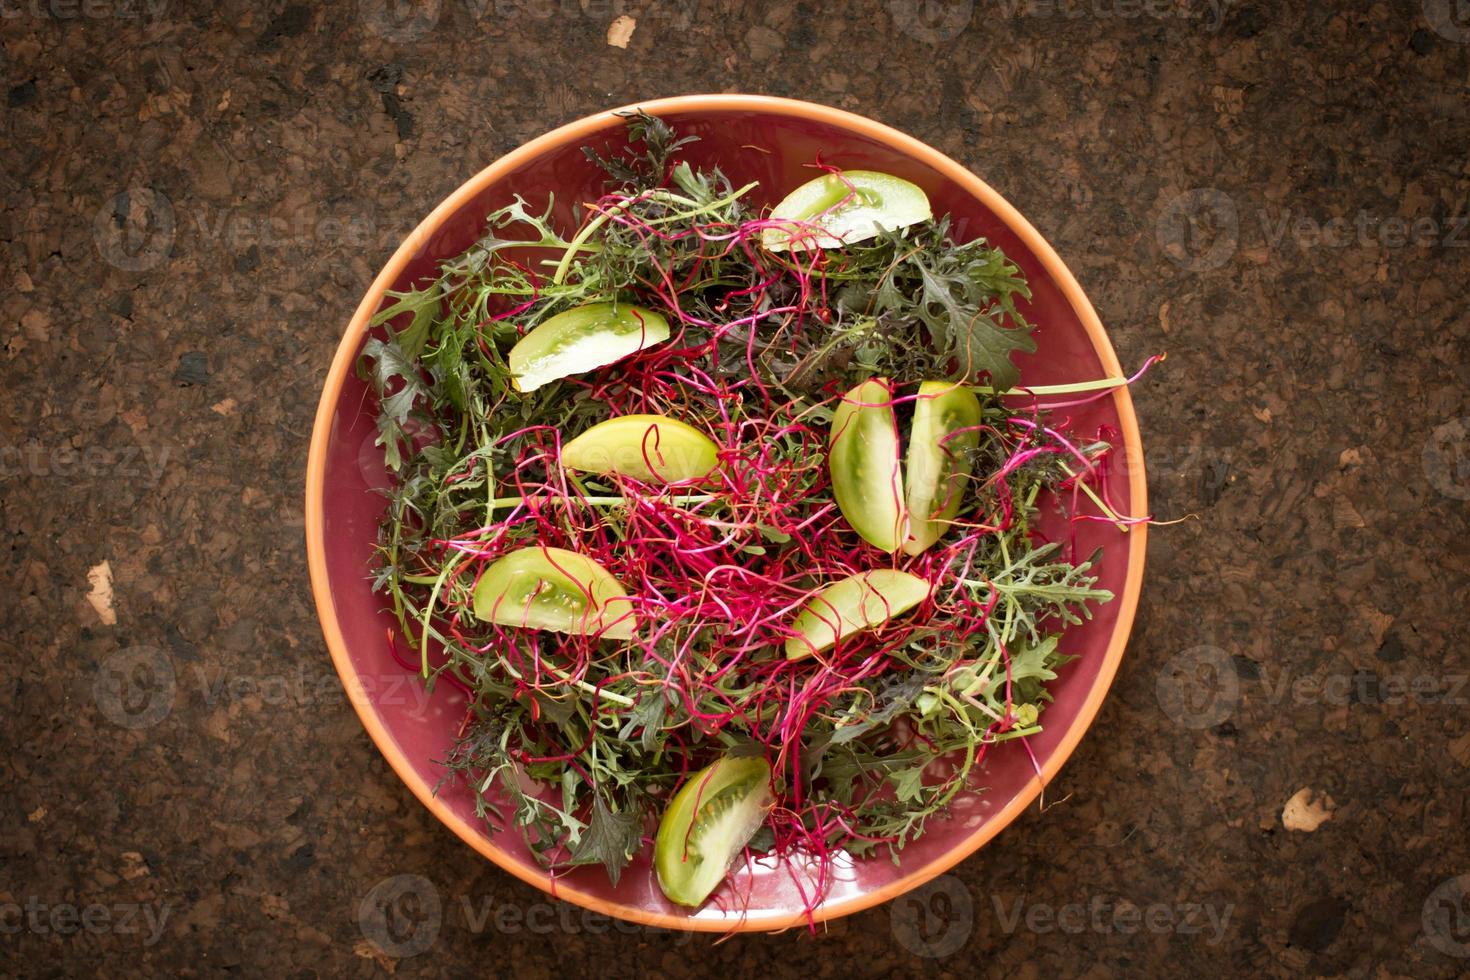 salad leaves for a healthy body and spirit photo